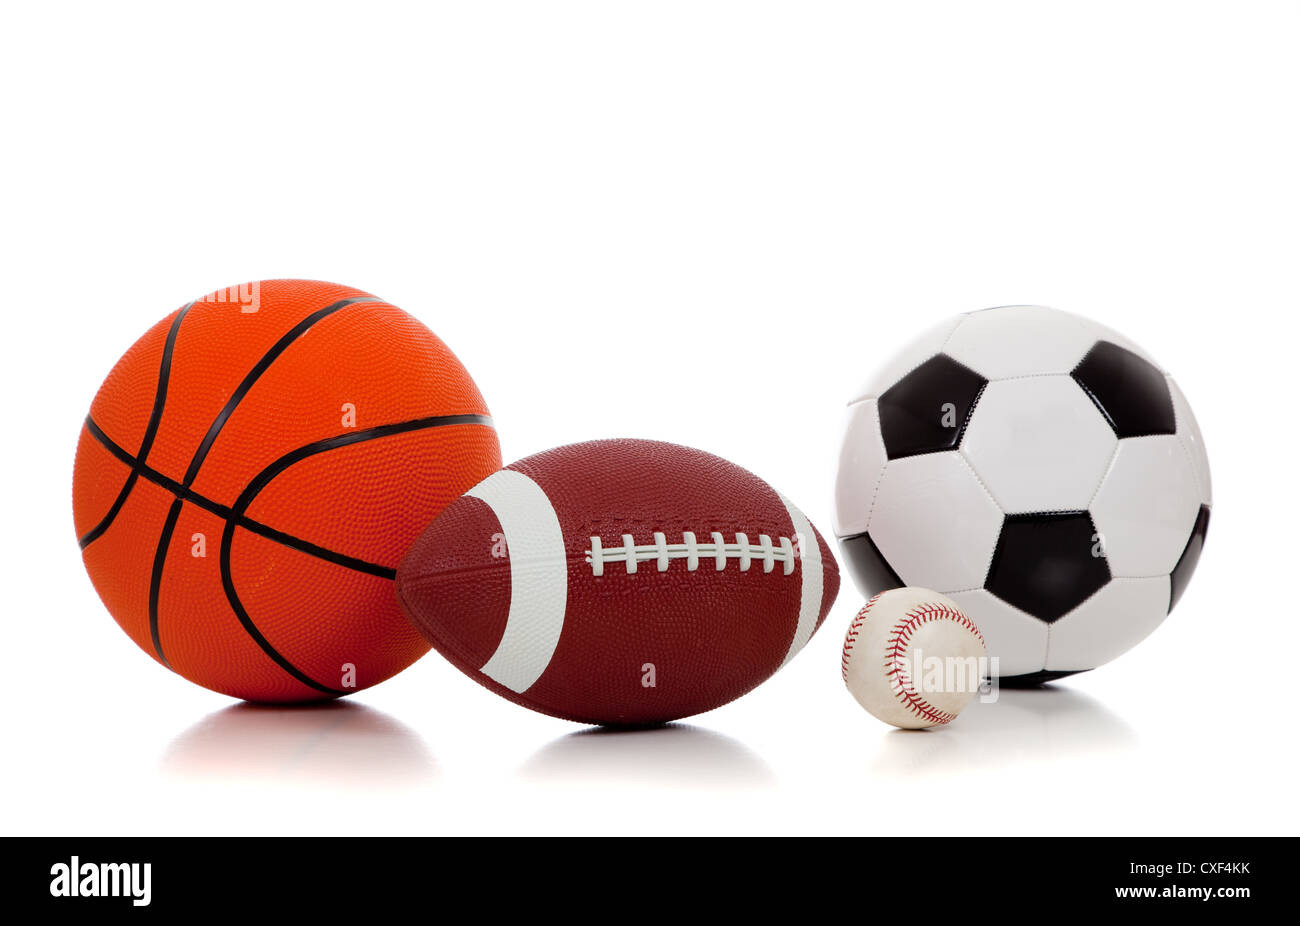 Various Sports Balls On A White Background